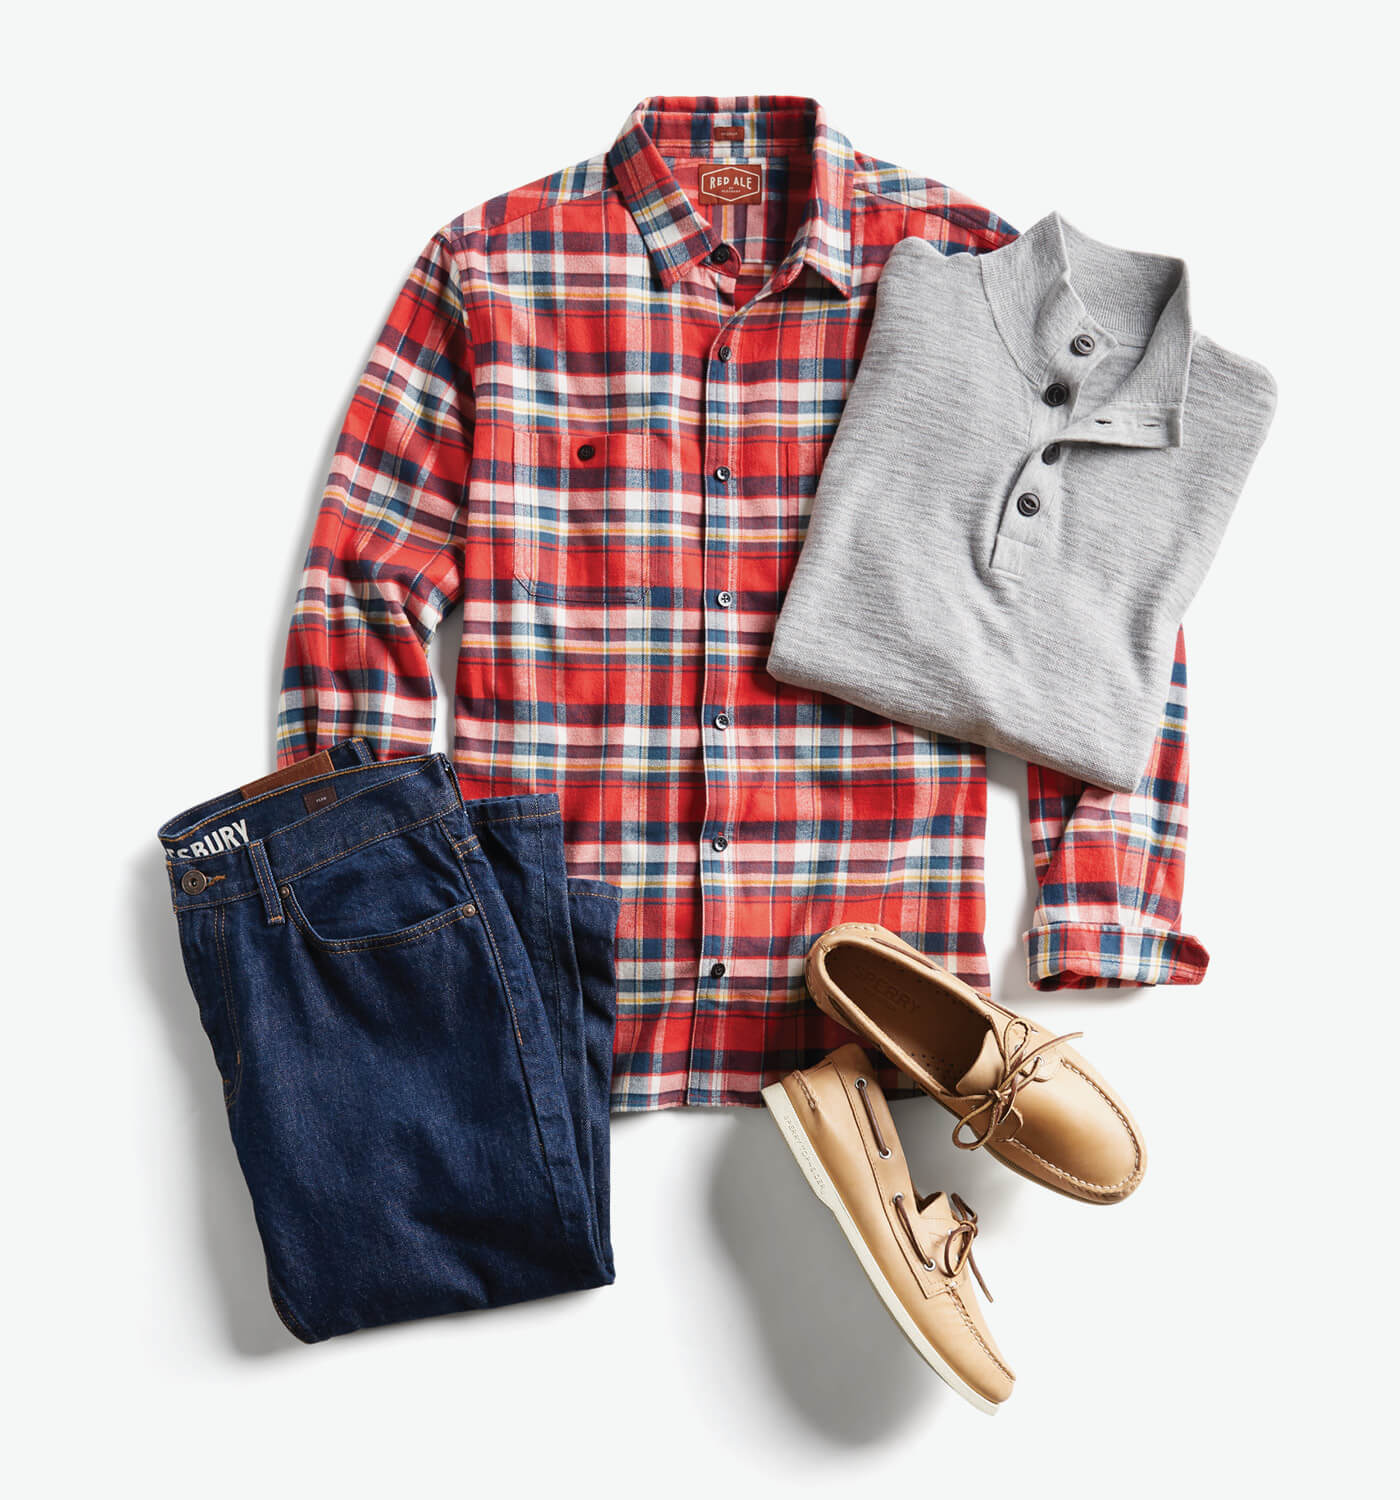 cacc86cd72 How do I wear flannel without looking like a lumberjack